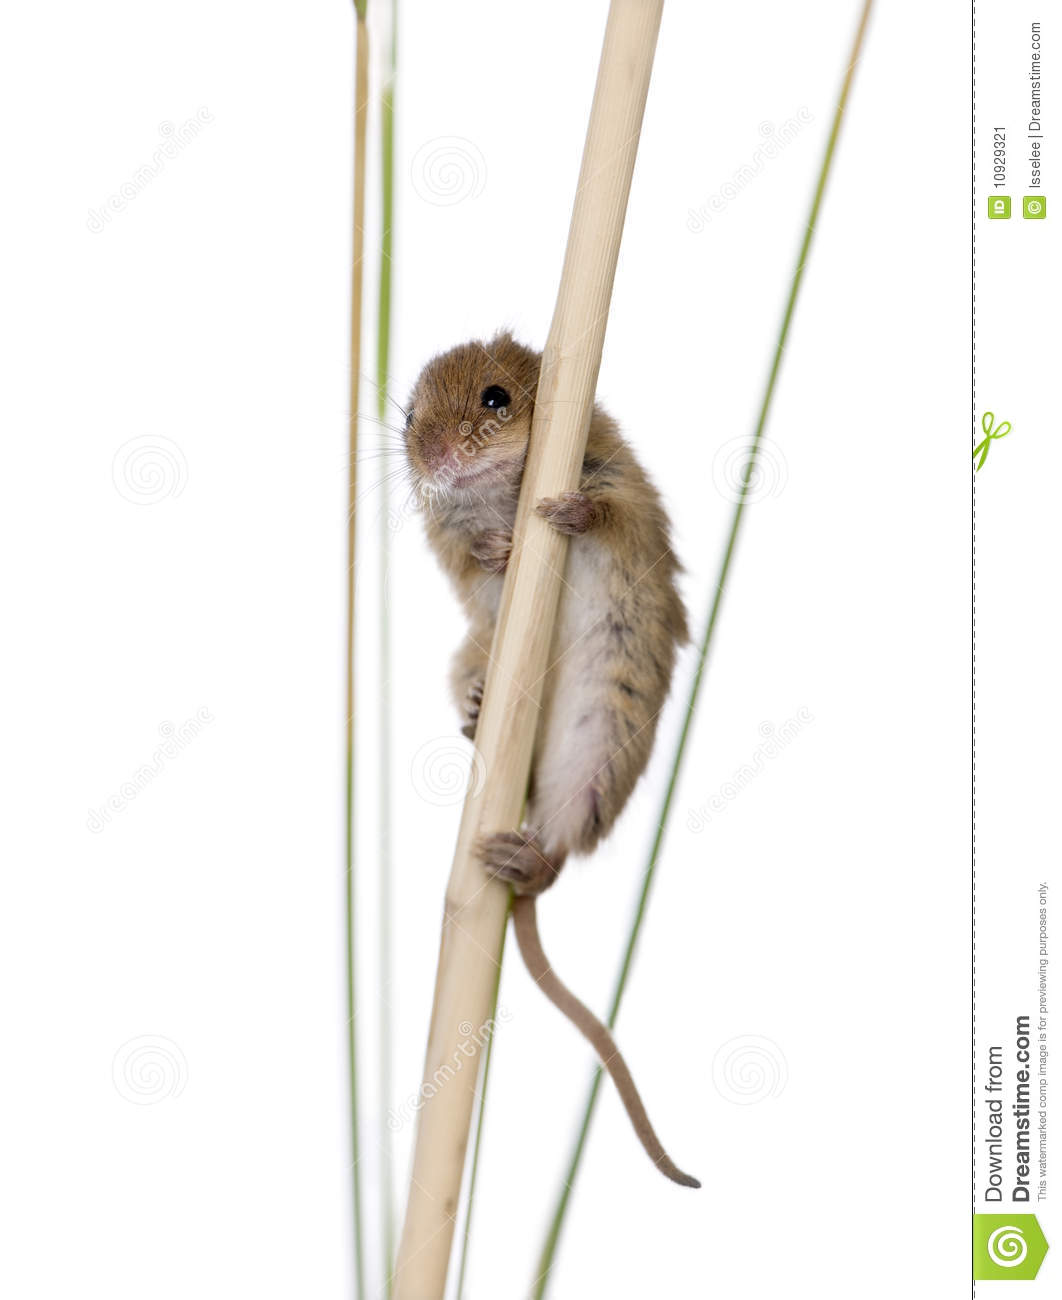 Harvest Mouse clipart #11, Download drawings